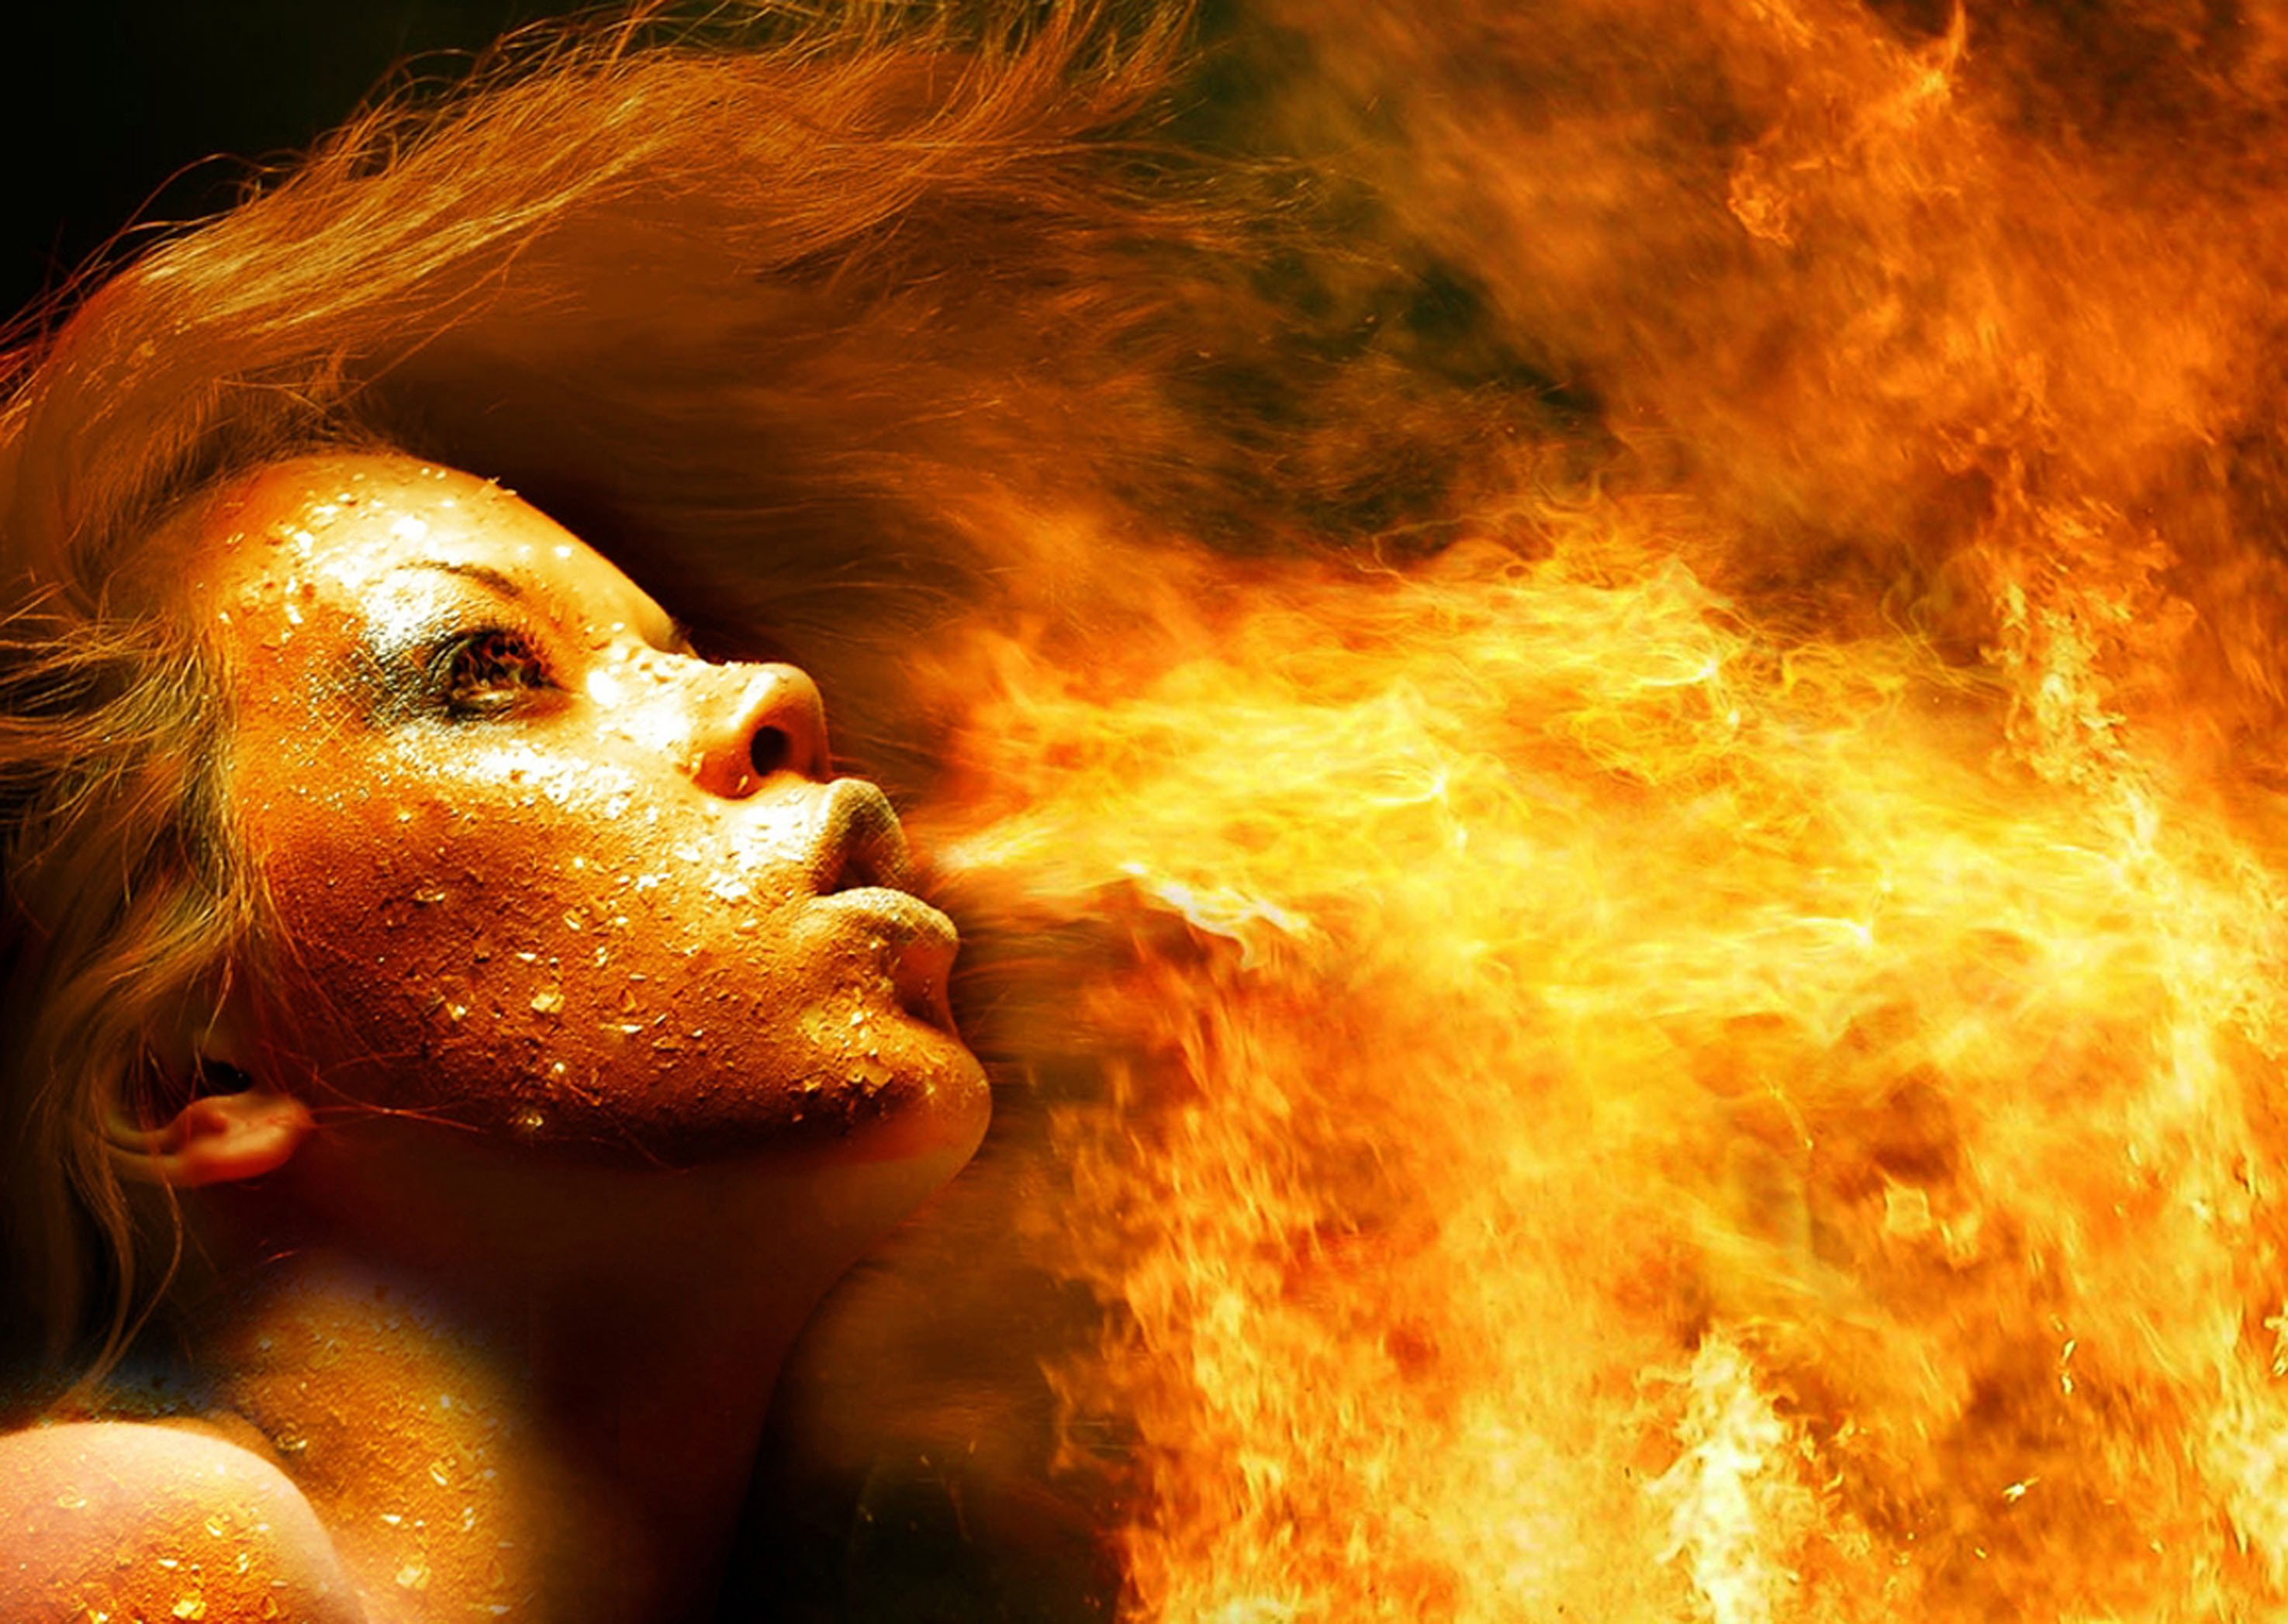 Fire background HD ·① Download free stunning HD wallpapers